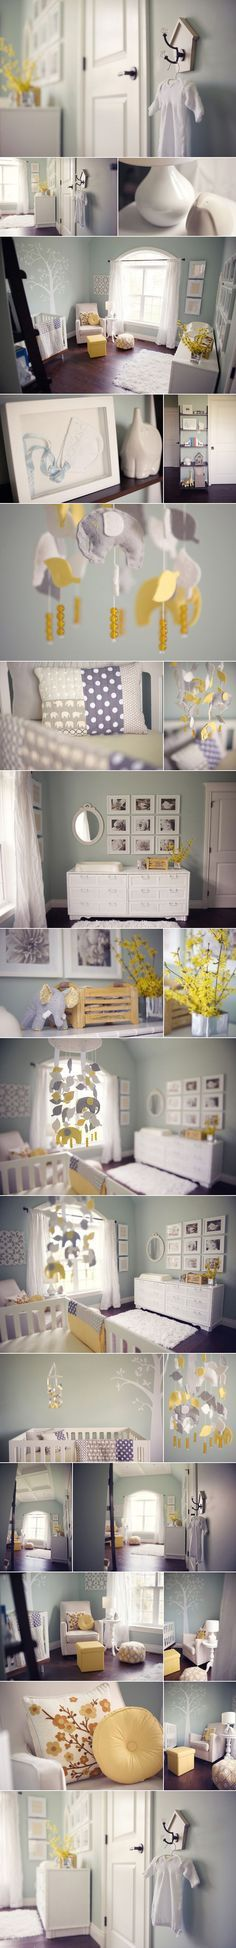 What a fantastic nursery - yellow and gray